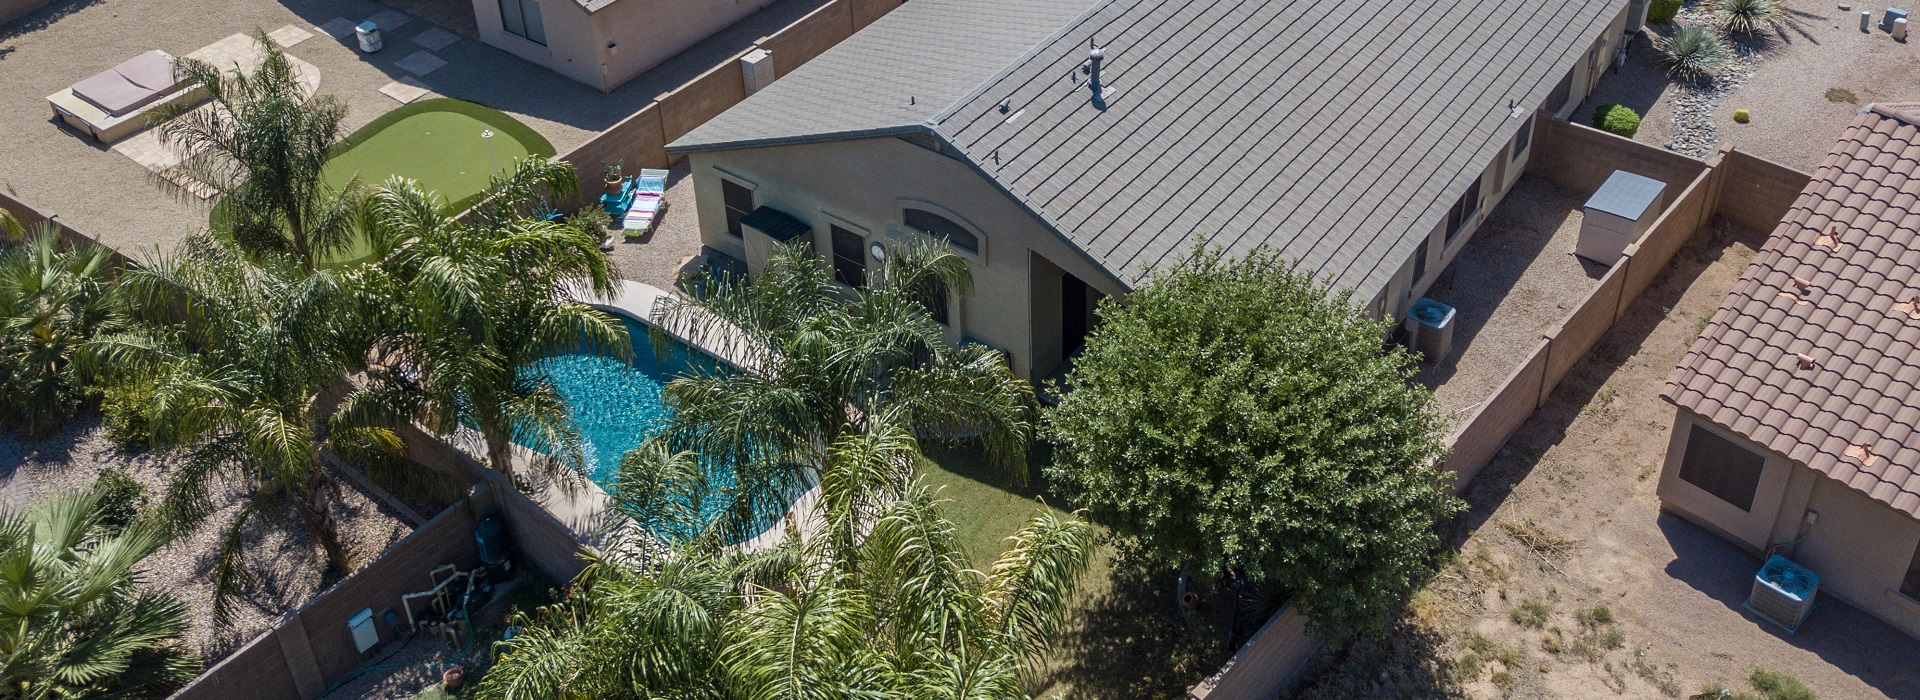 Aerial View of Home for Sale